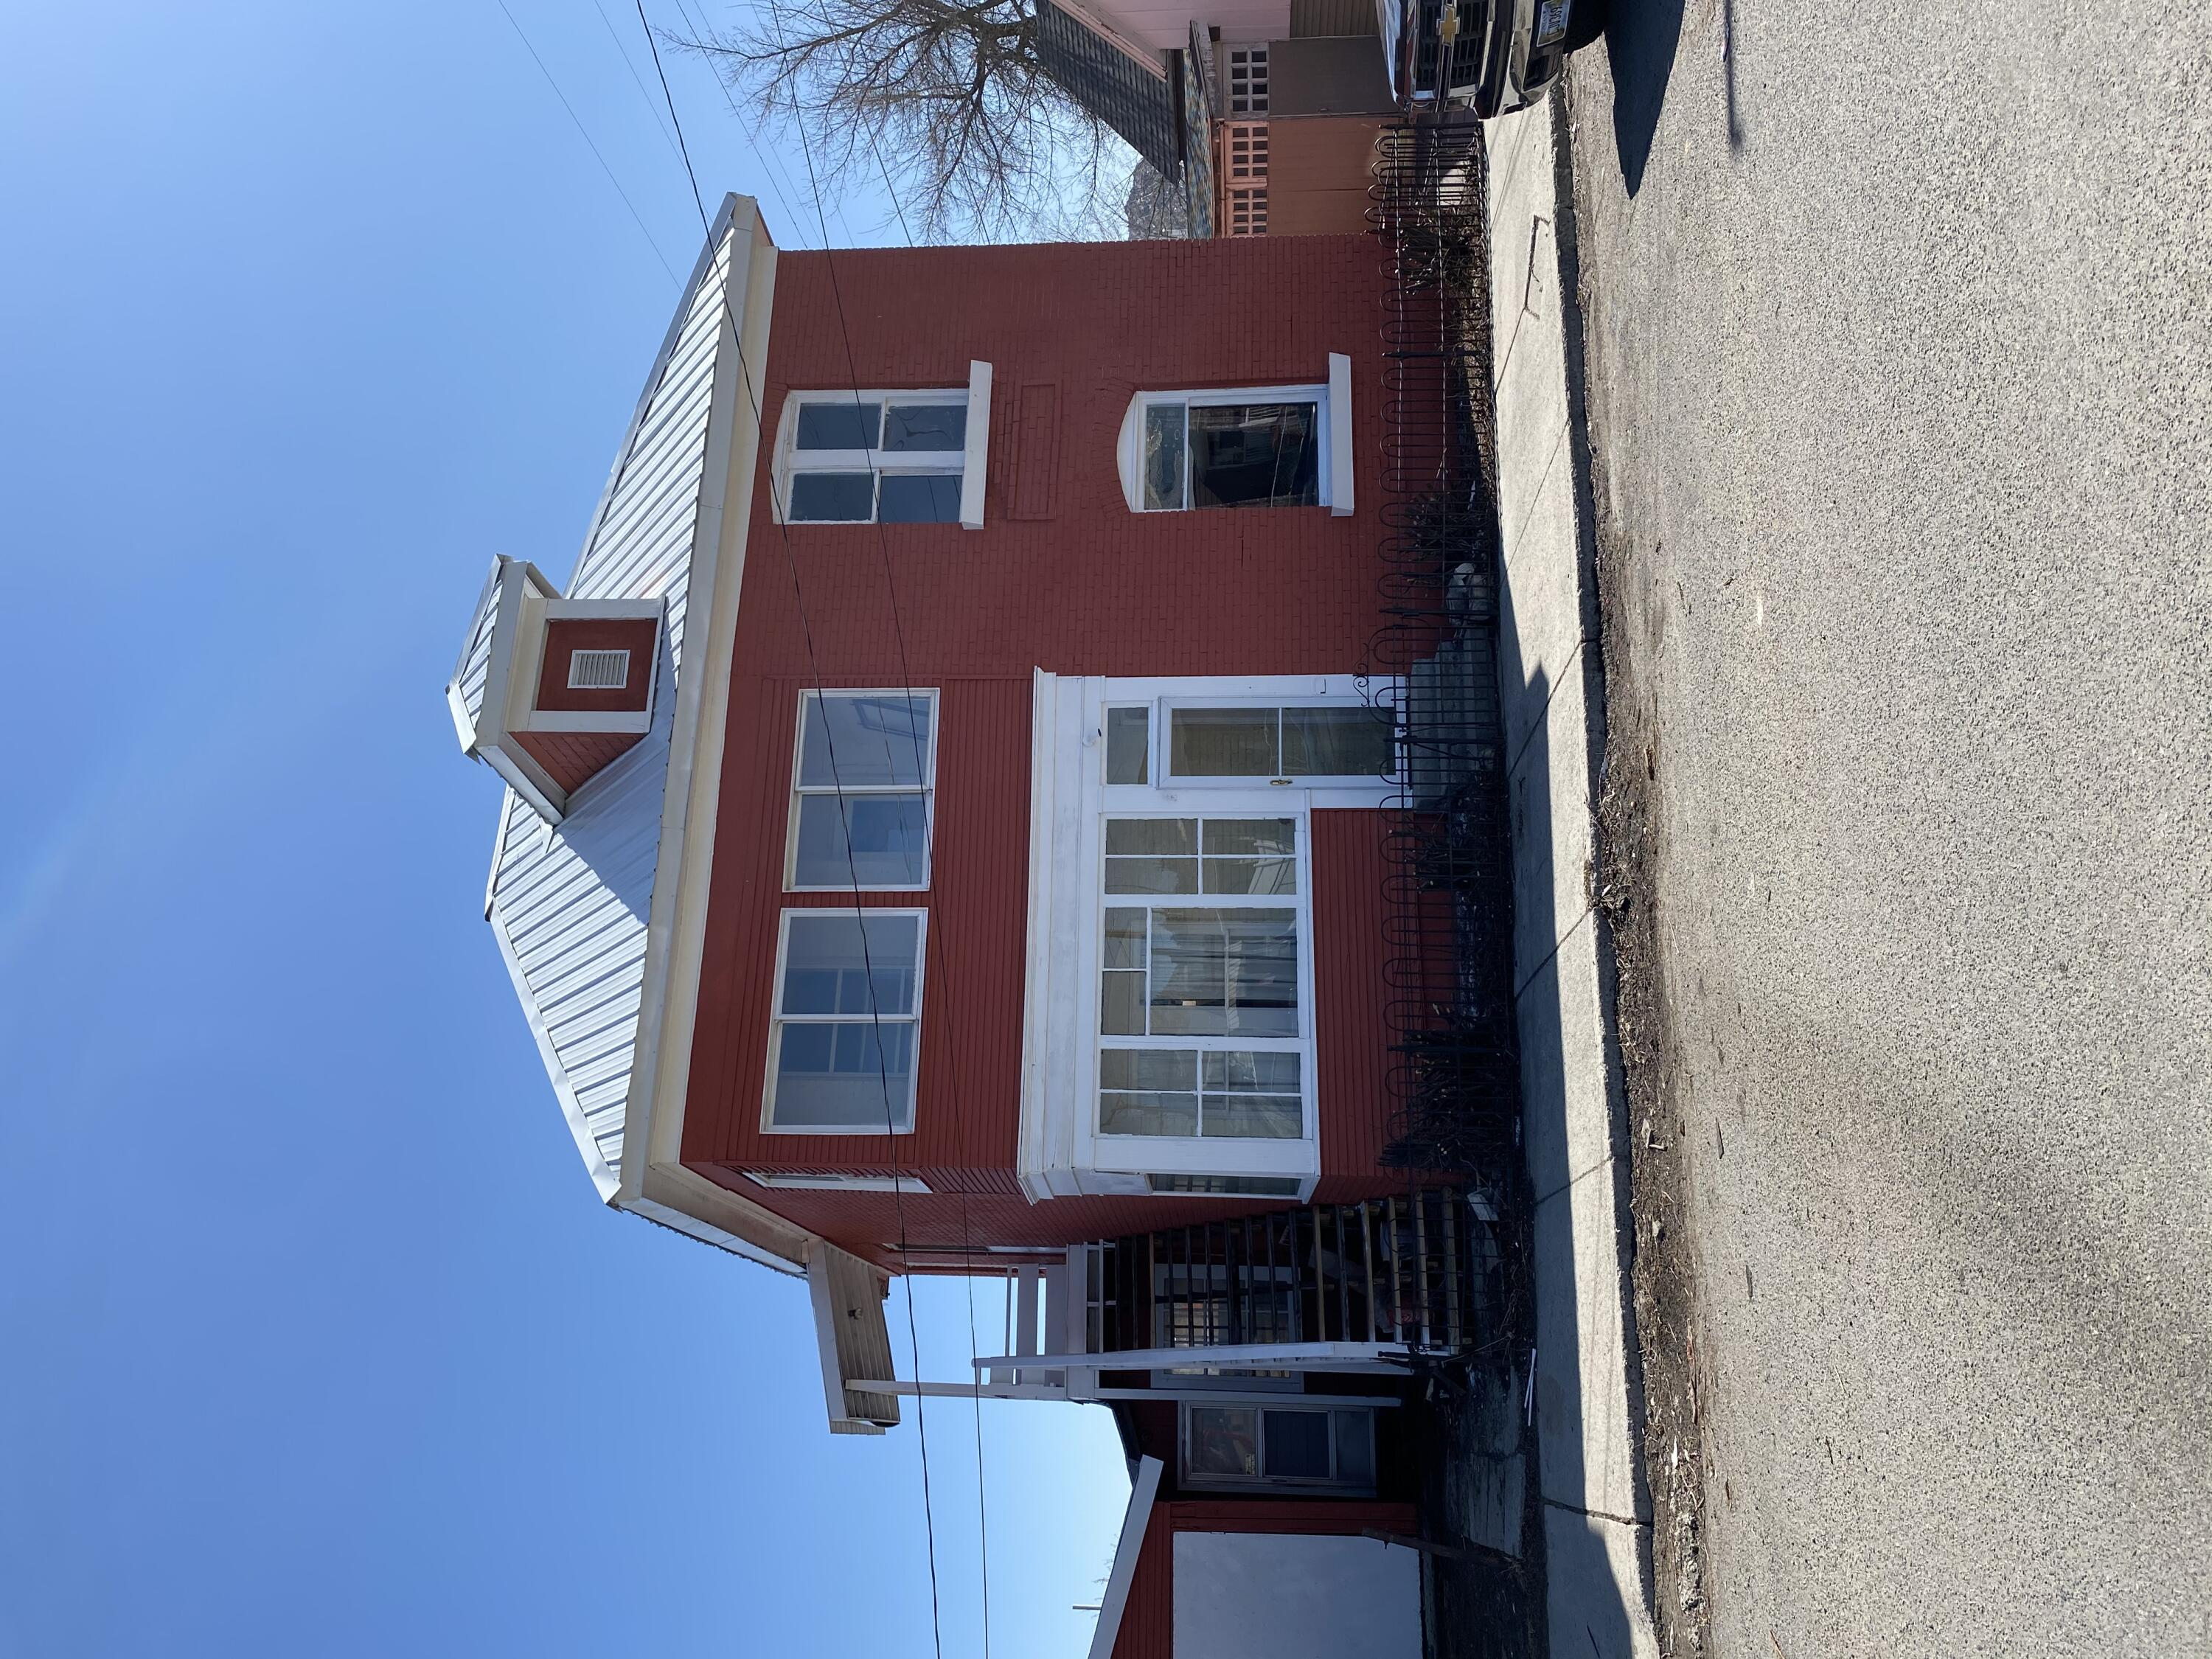 Five large bedrooms with a bathroom on each level. Many updates have taken place. Vacant and priced to sell.